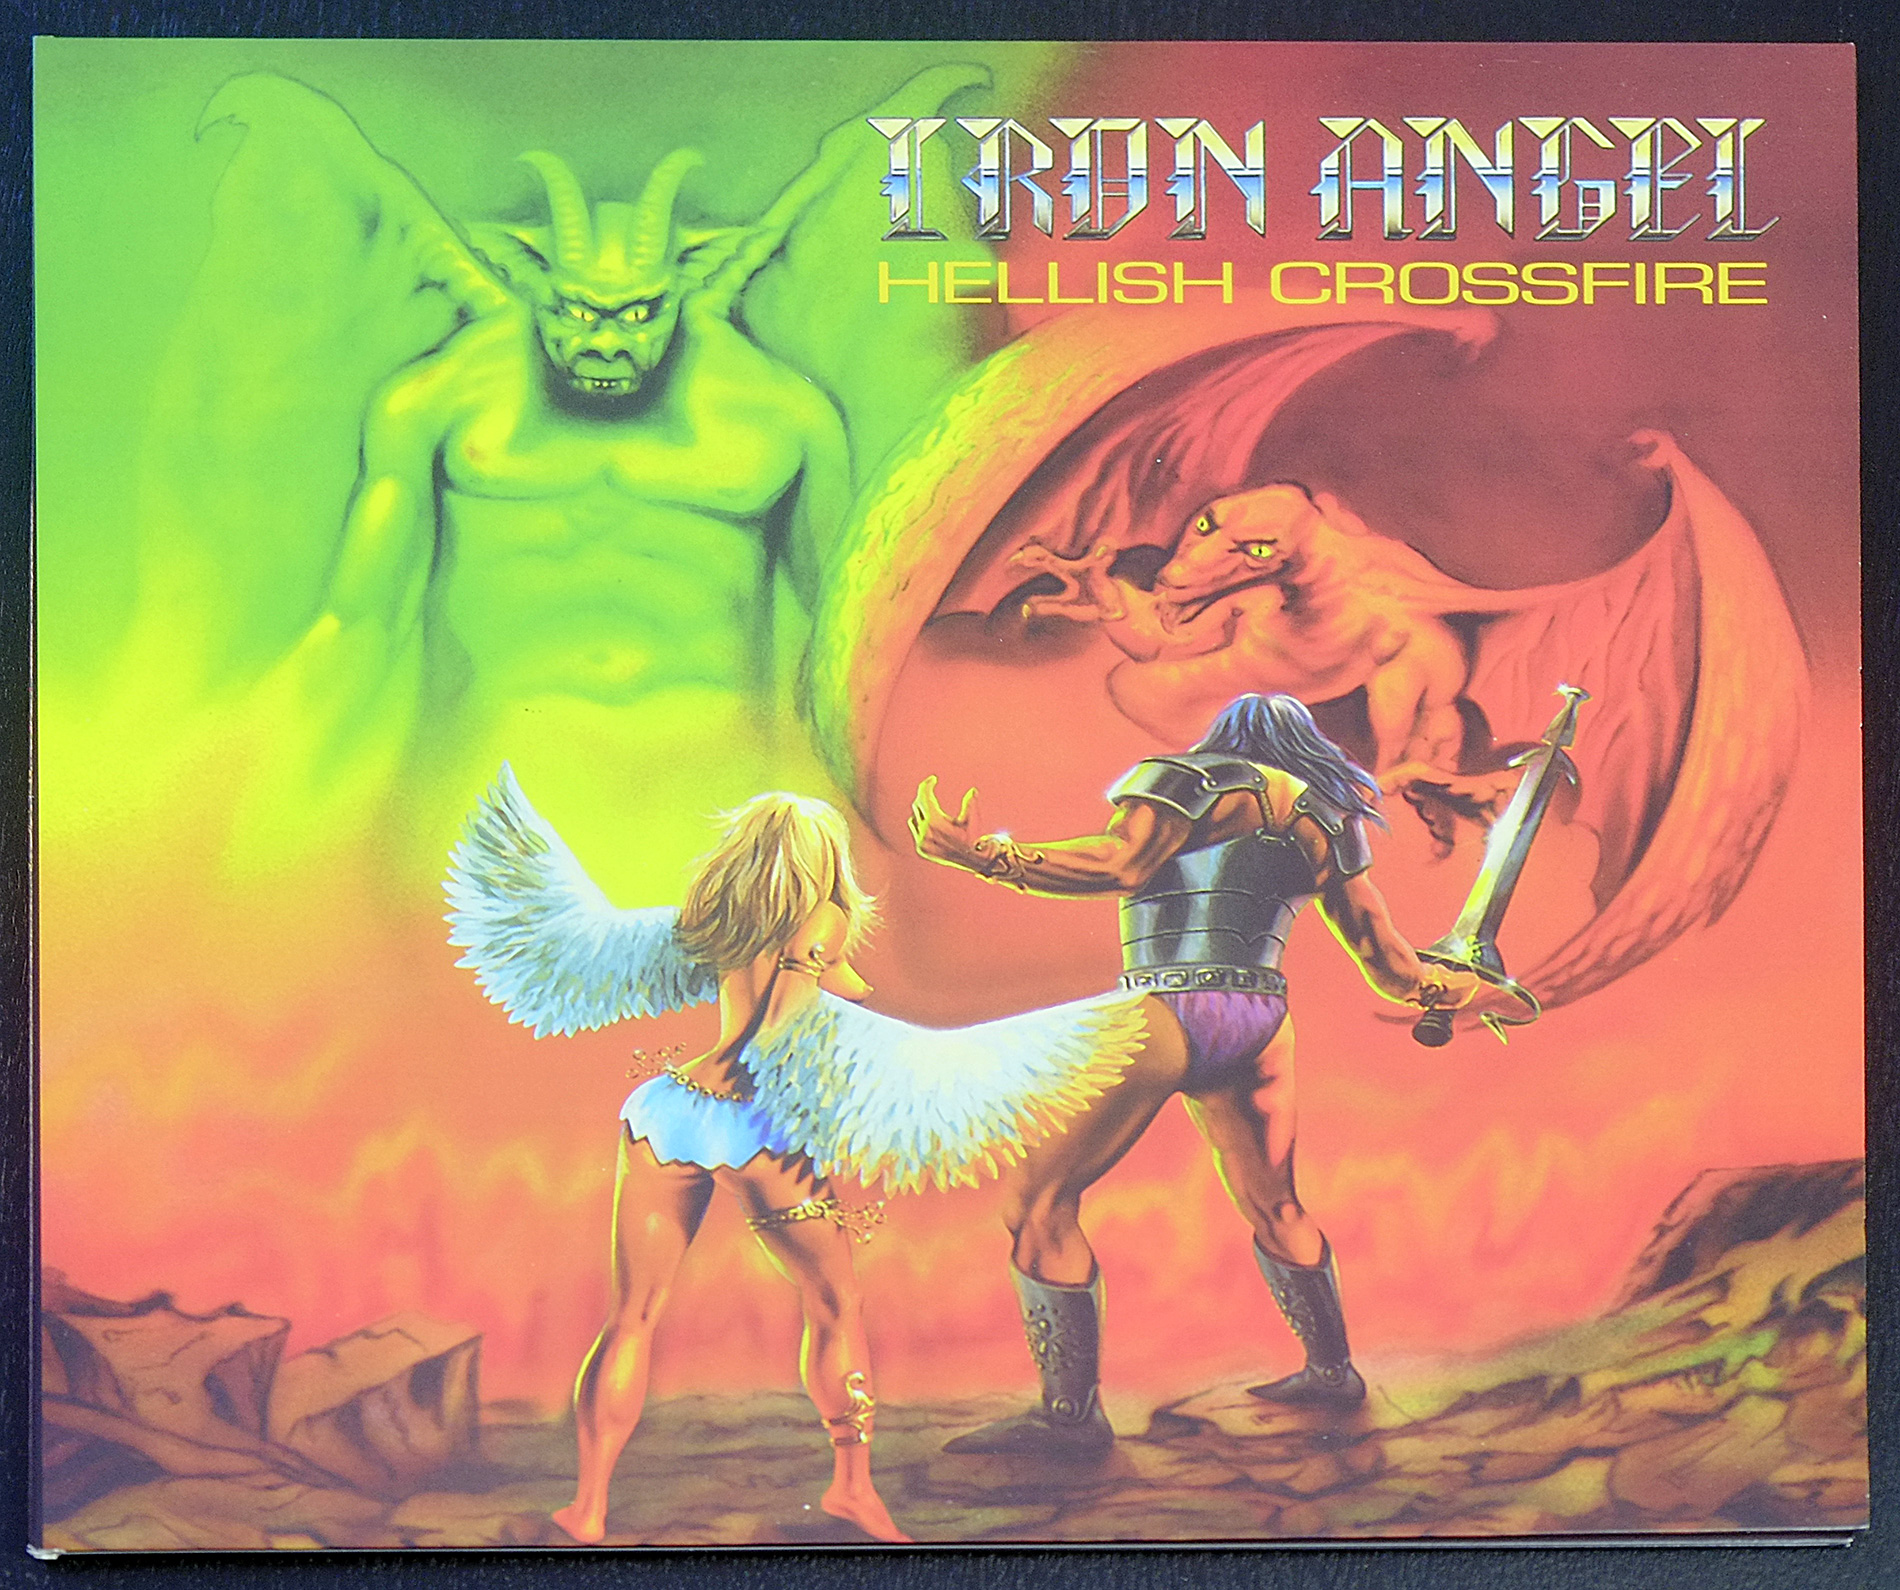 "IRON ANGEL Hellish Crossfire 12"" FOC LP ALBUM VINYL"